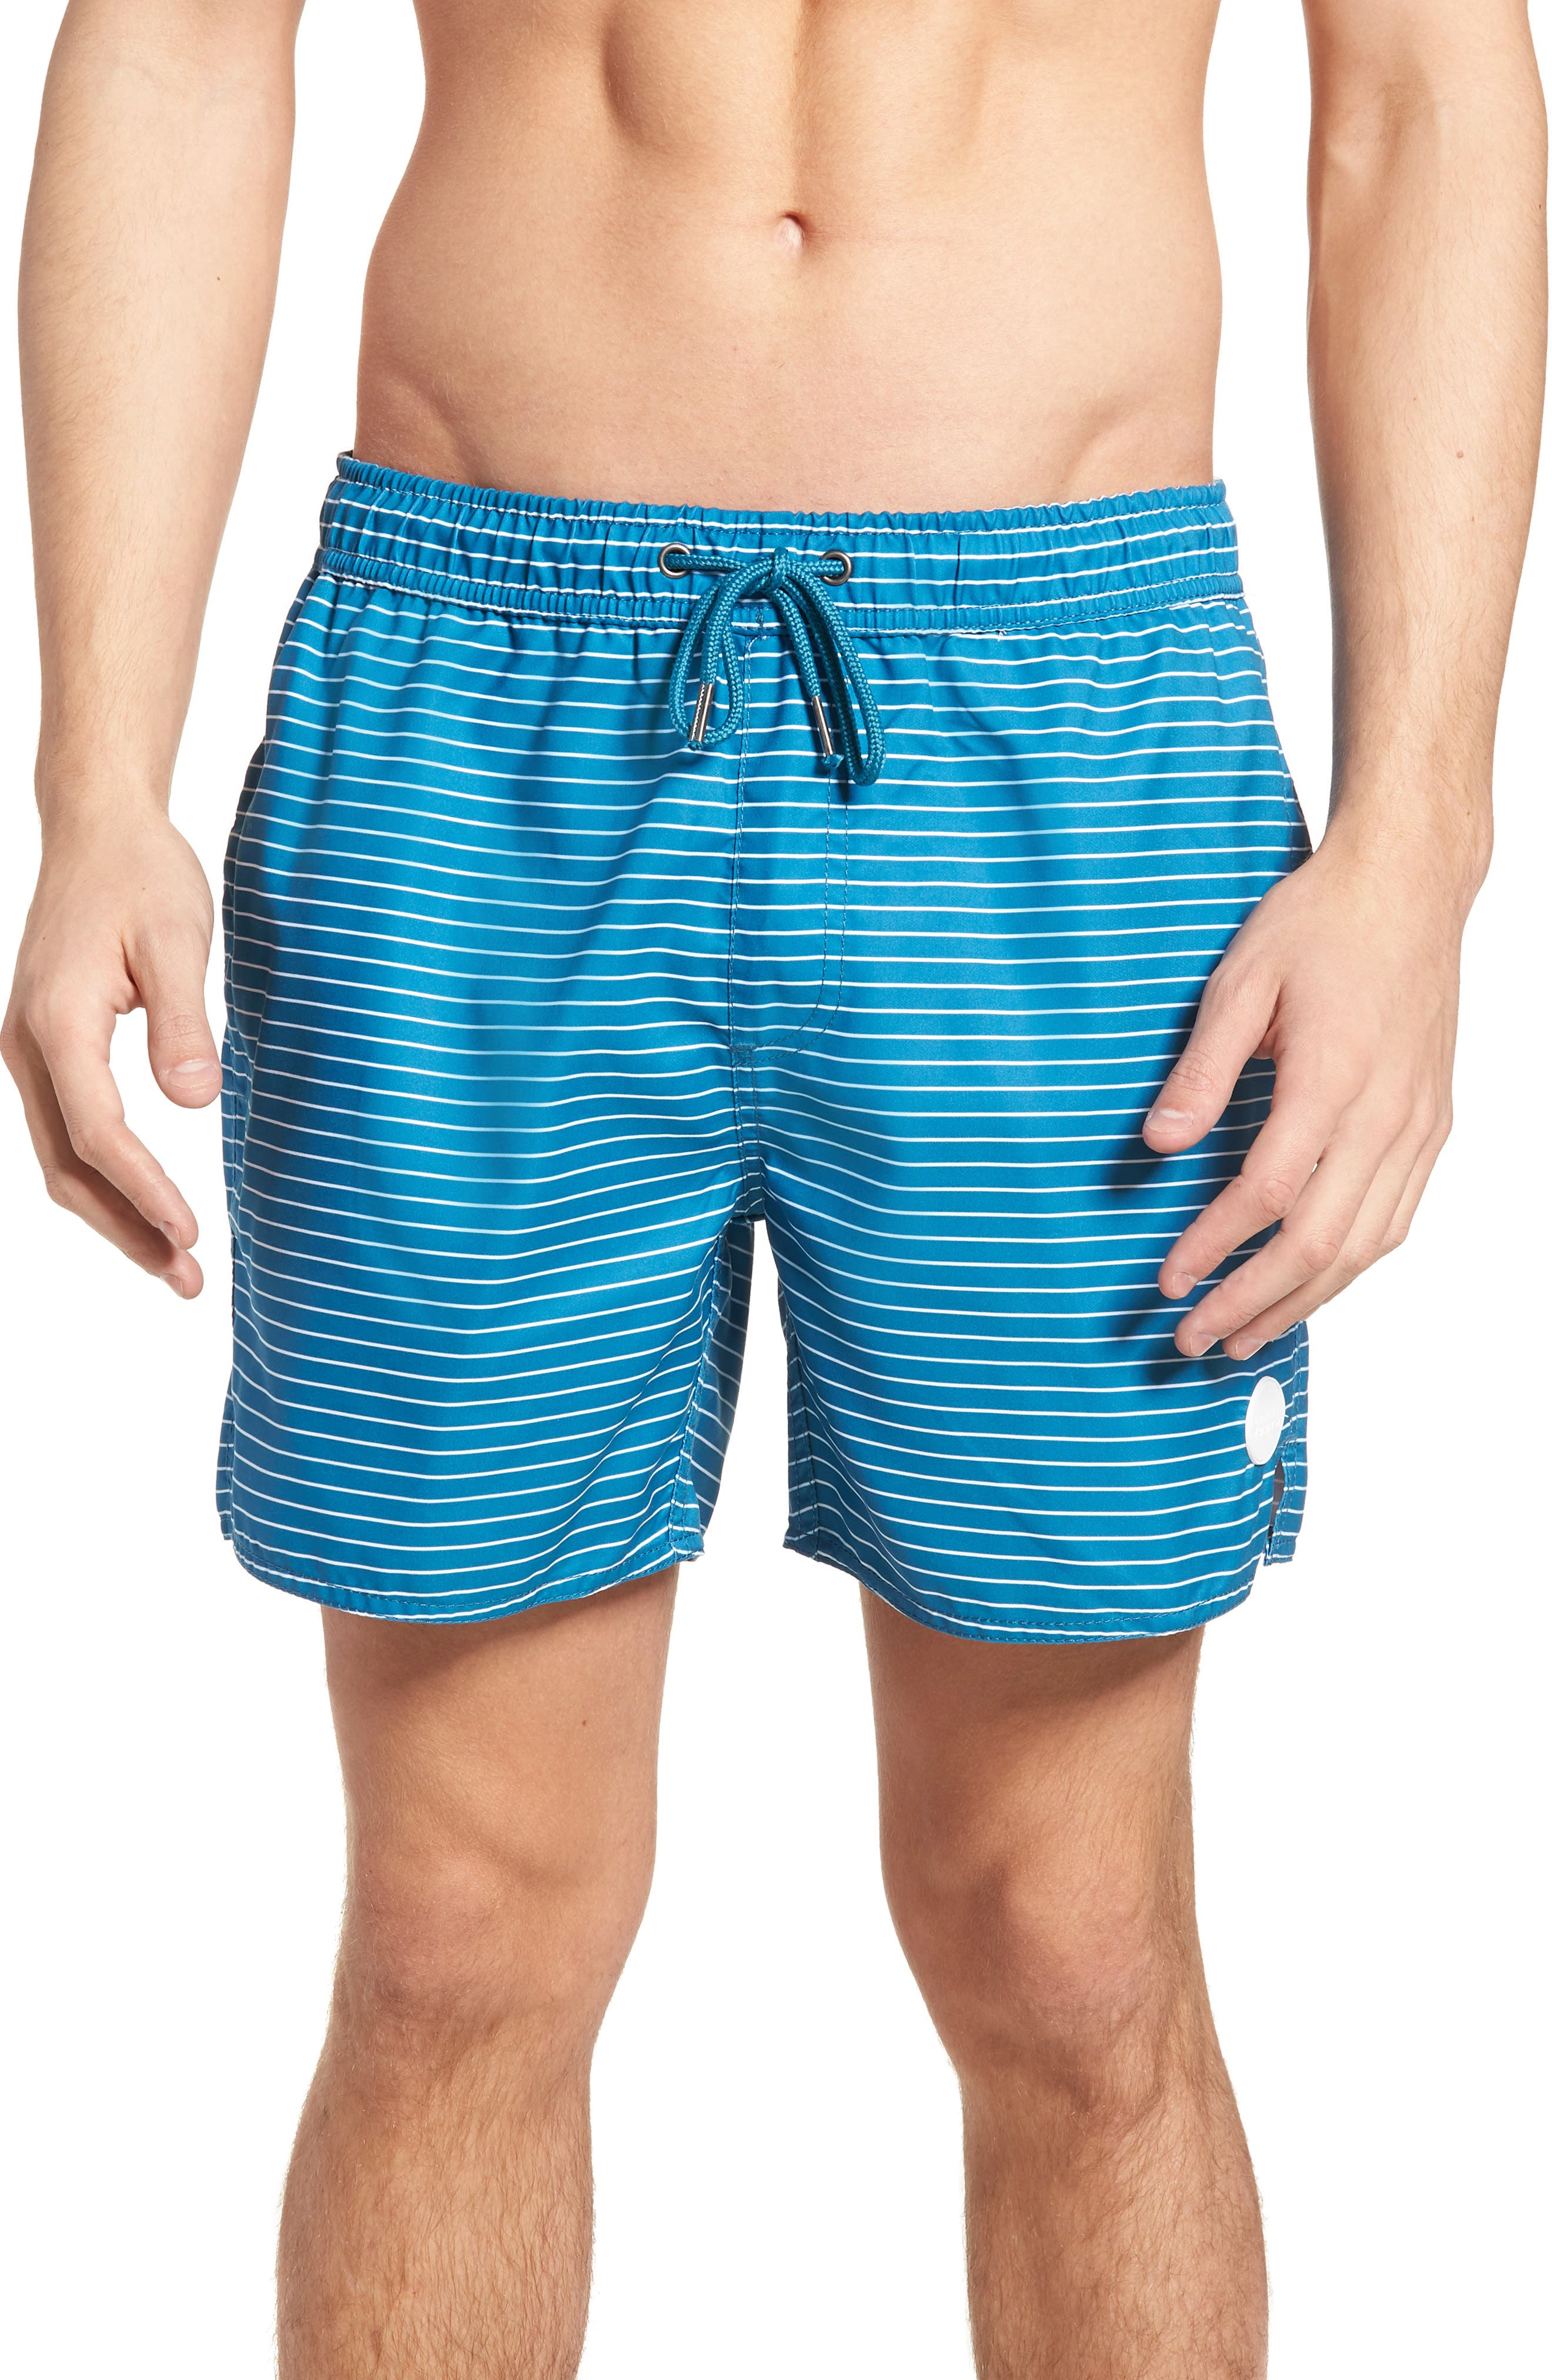 Boost Swim Trunks,                         Main,                         color, TEAL